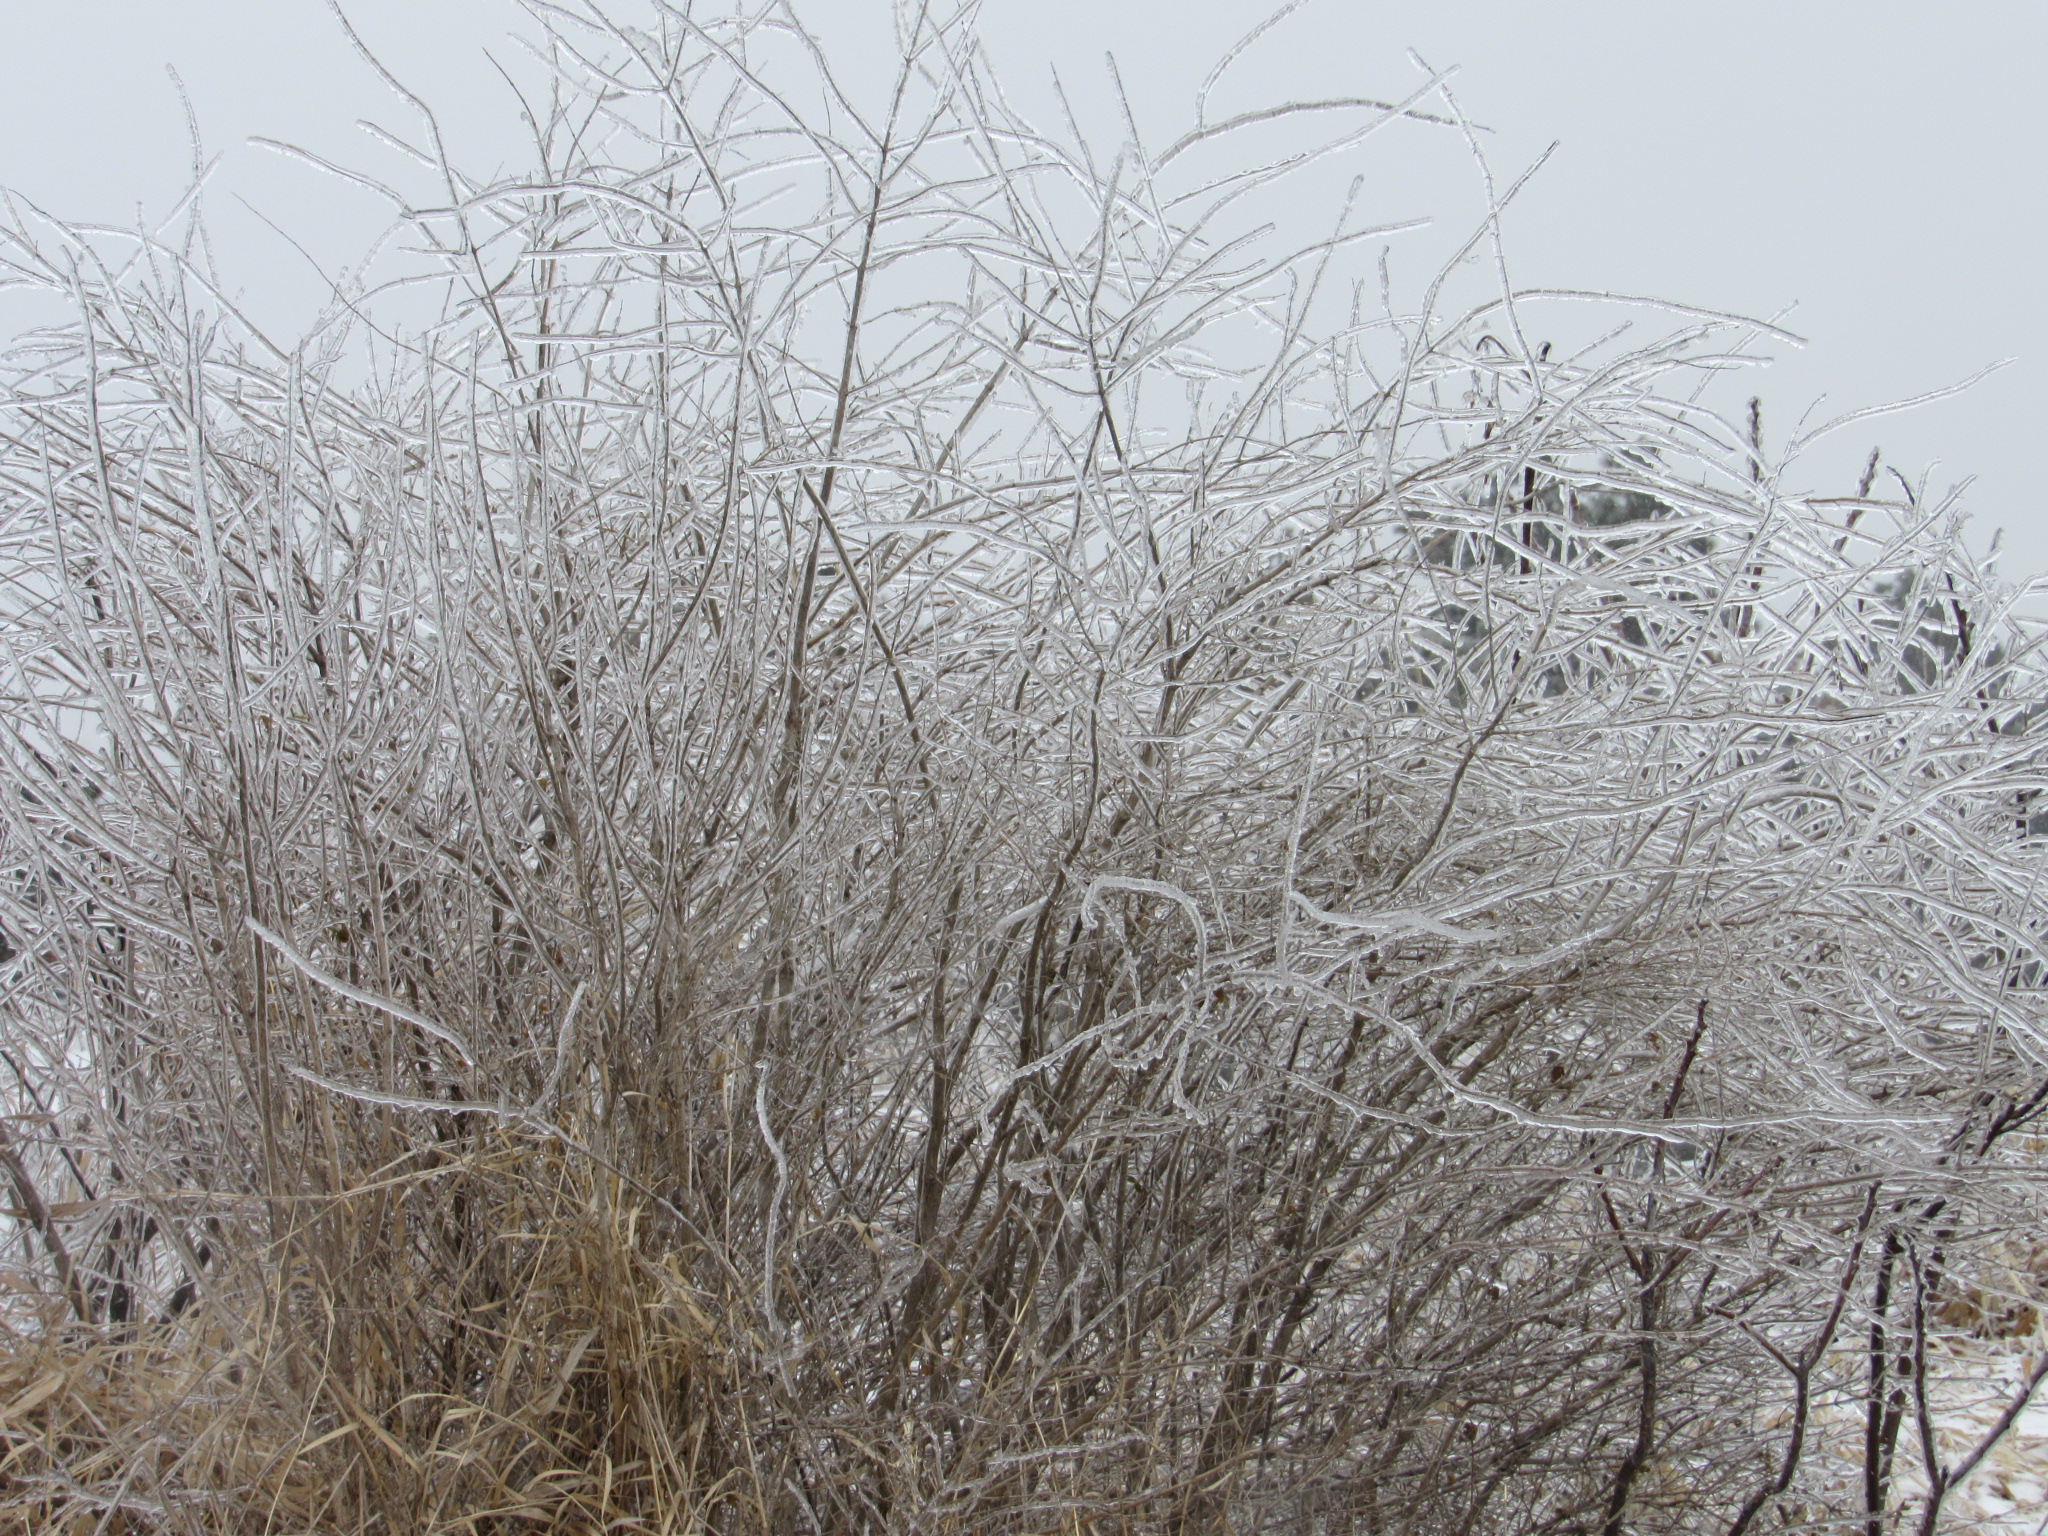 (4/4) The grass over the Tevatron molehill form tiny ice sticks. nature, winter, ice, plant, grass Photo: Luciano Elementi